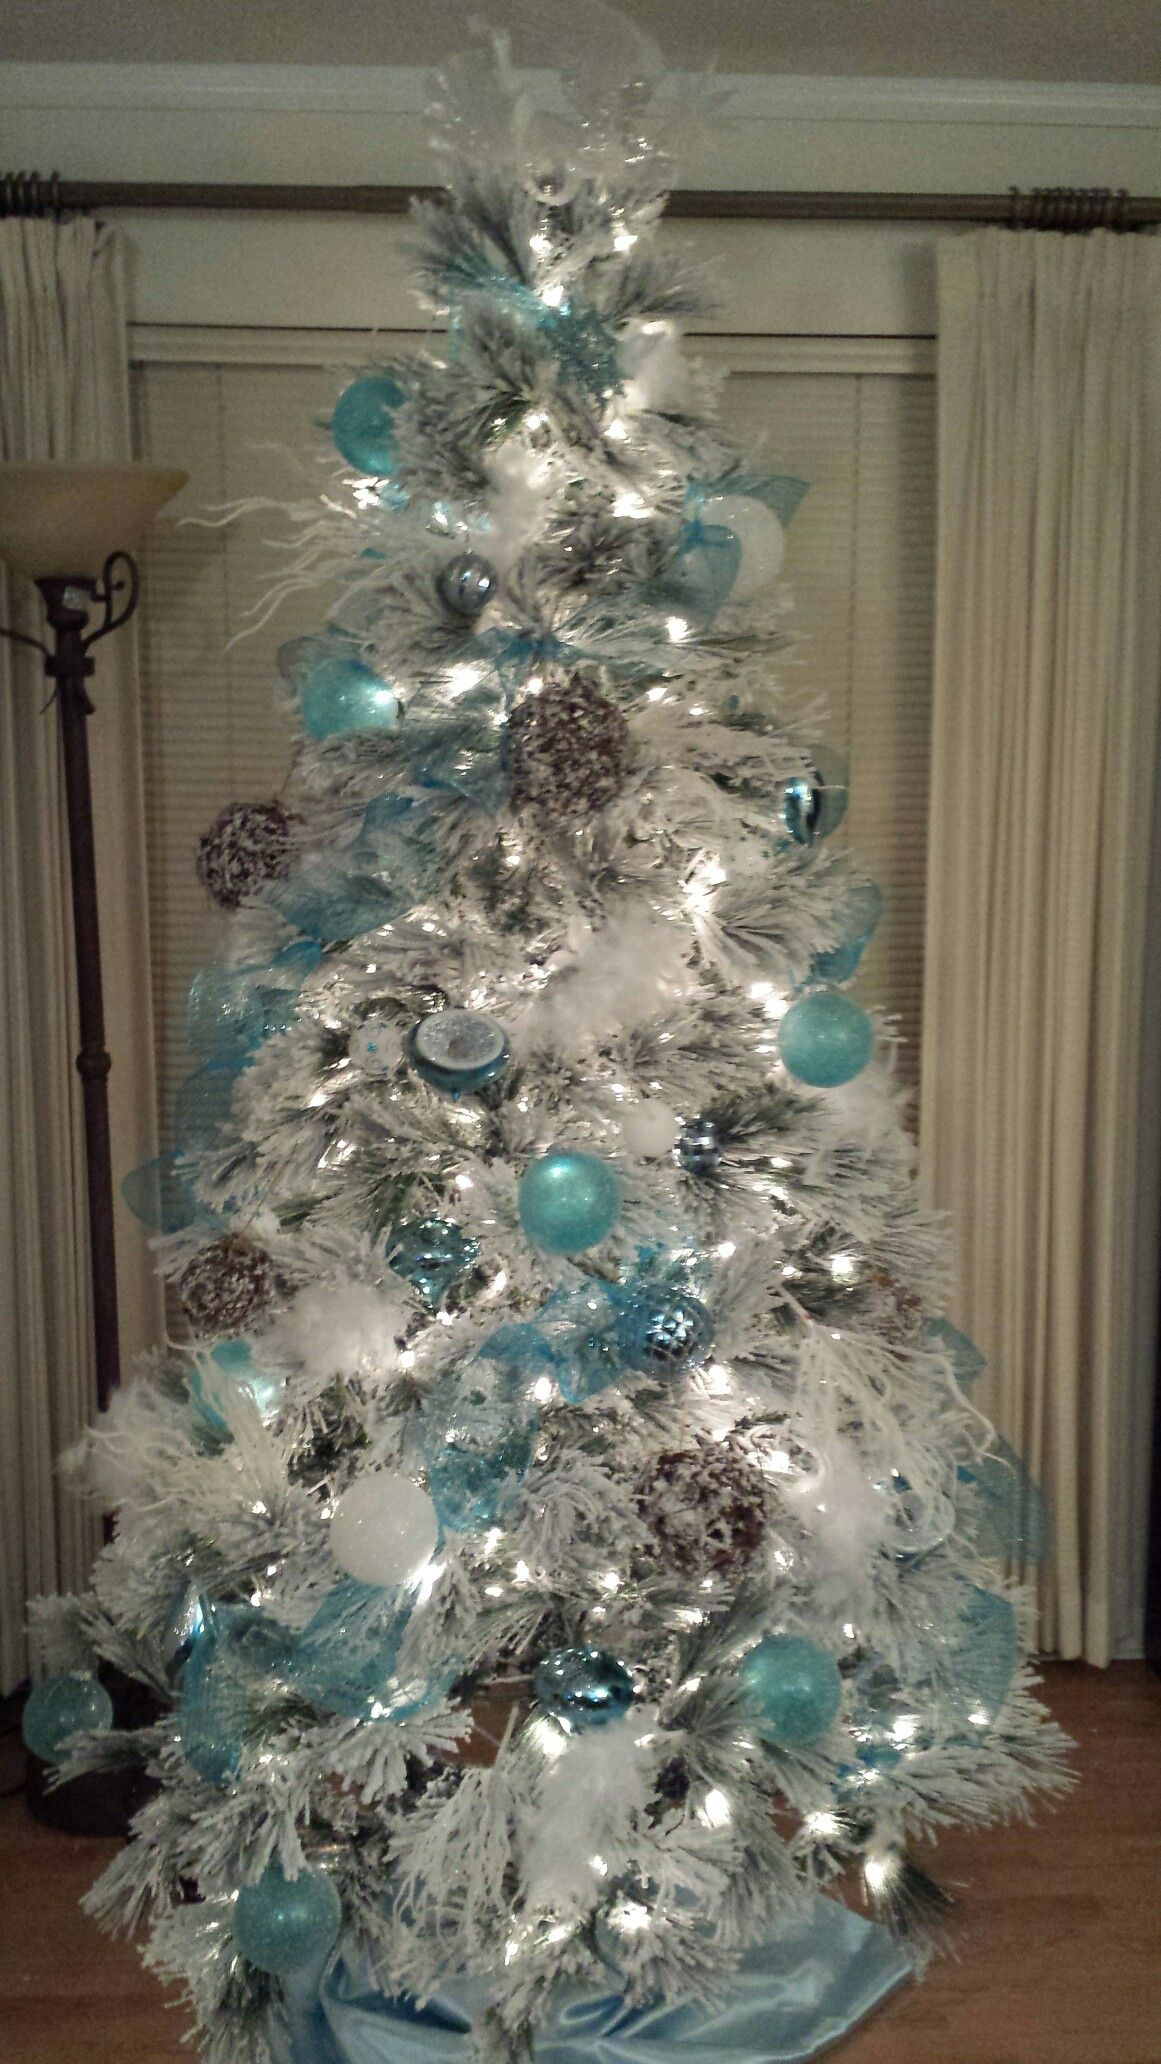 White christmas tree with blue and silver decorations - Snow White Flocked Christmas Tree Decorated With Aqua Blue Silver And Snow Vine Balls